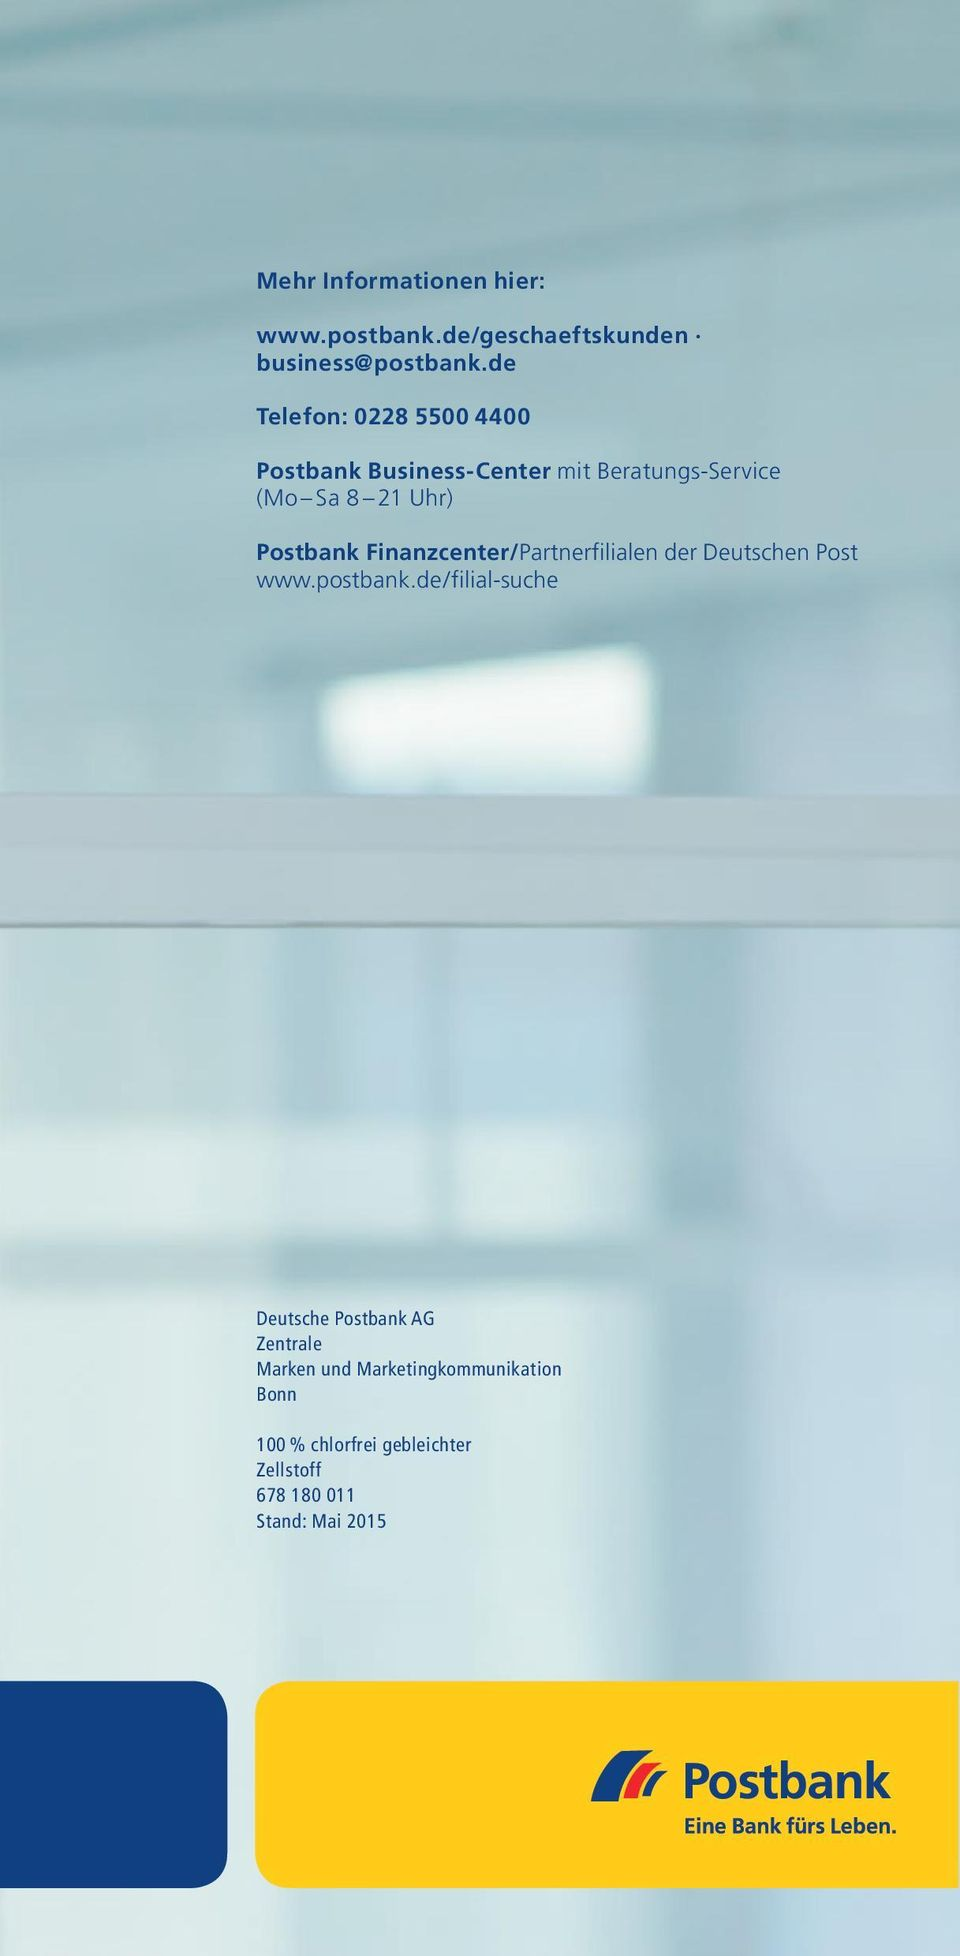 Postbank Finanzcenter/Partnerfilialen der Deutschen Post www.postbank.